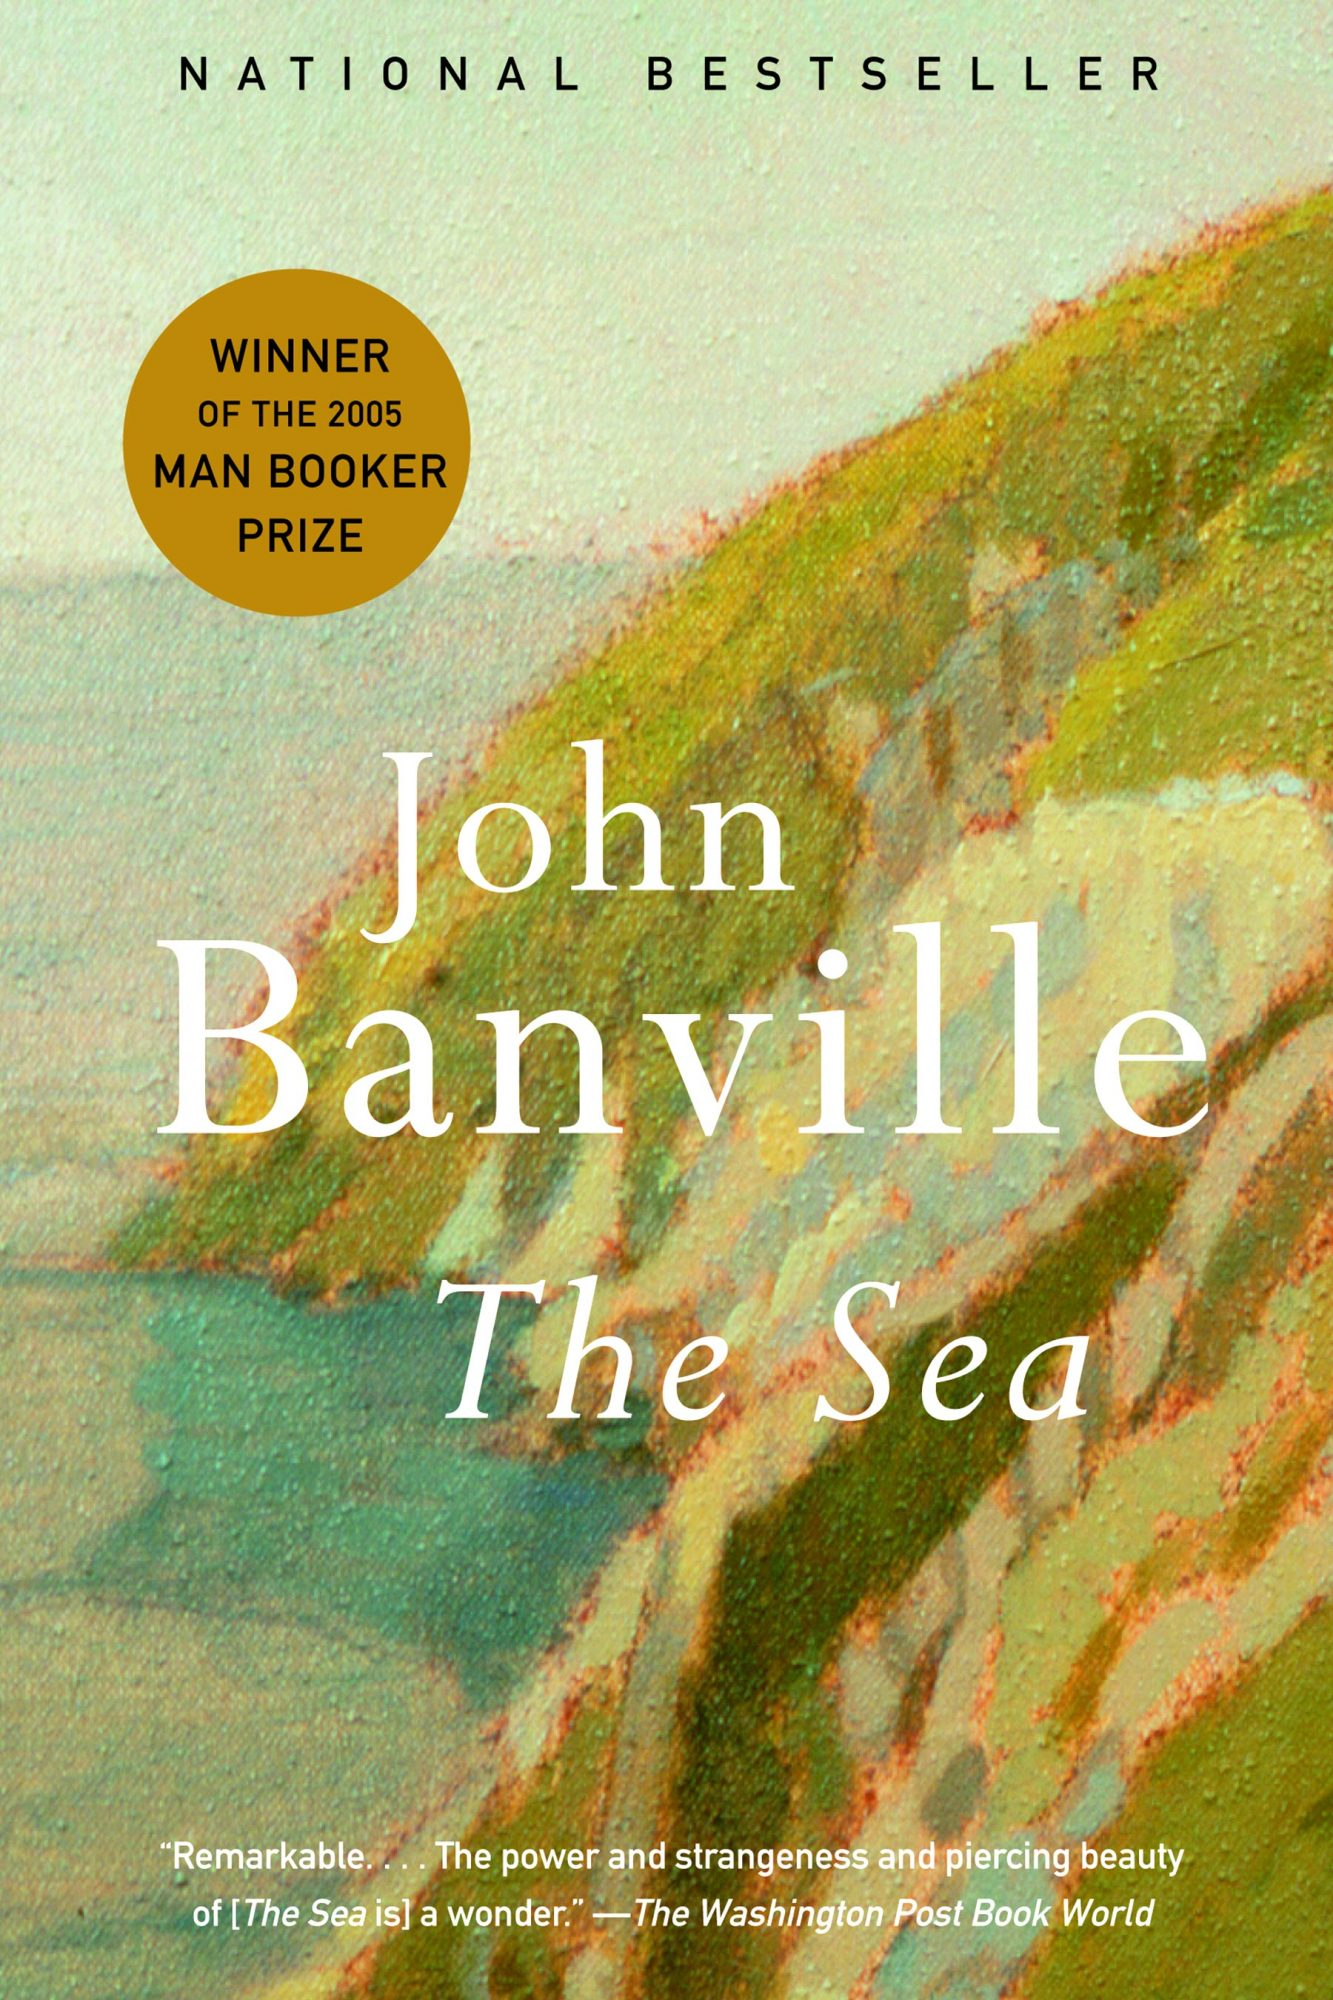 The Sea Paperback – August 15, 2006by John Banville  (Author)